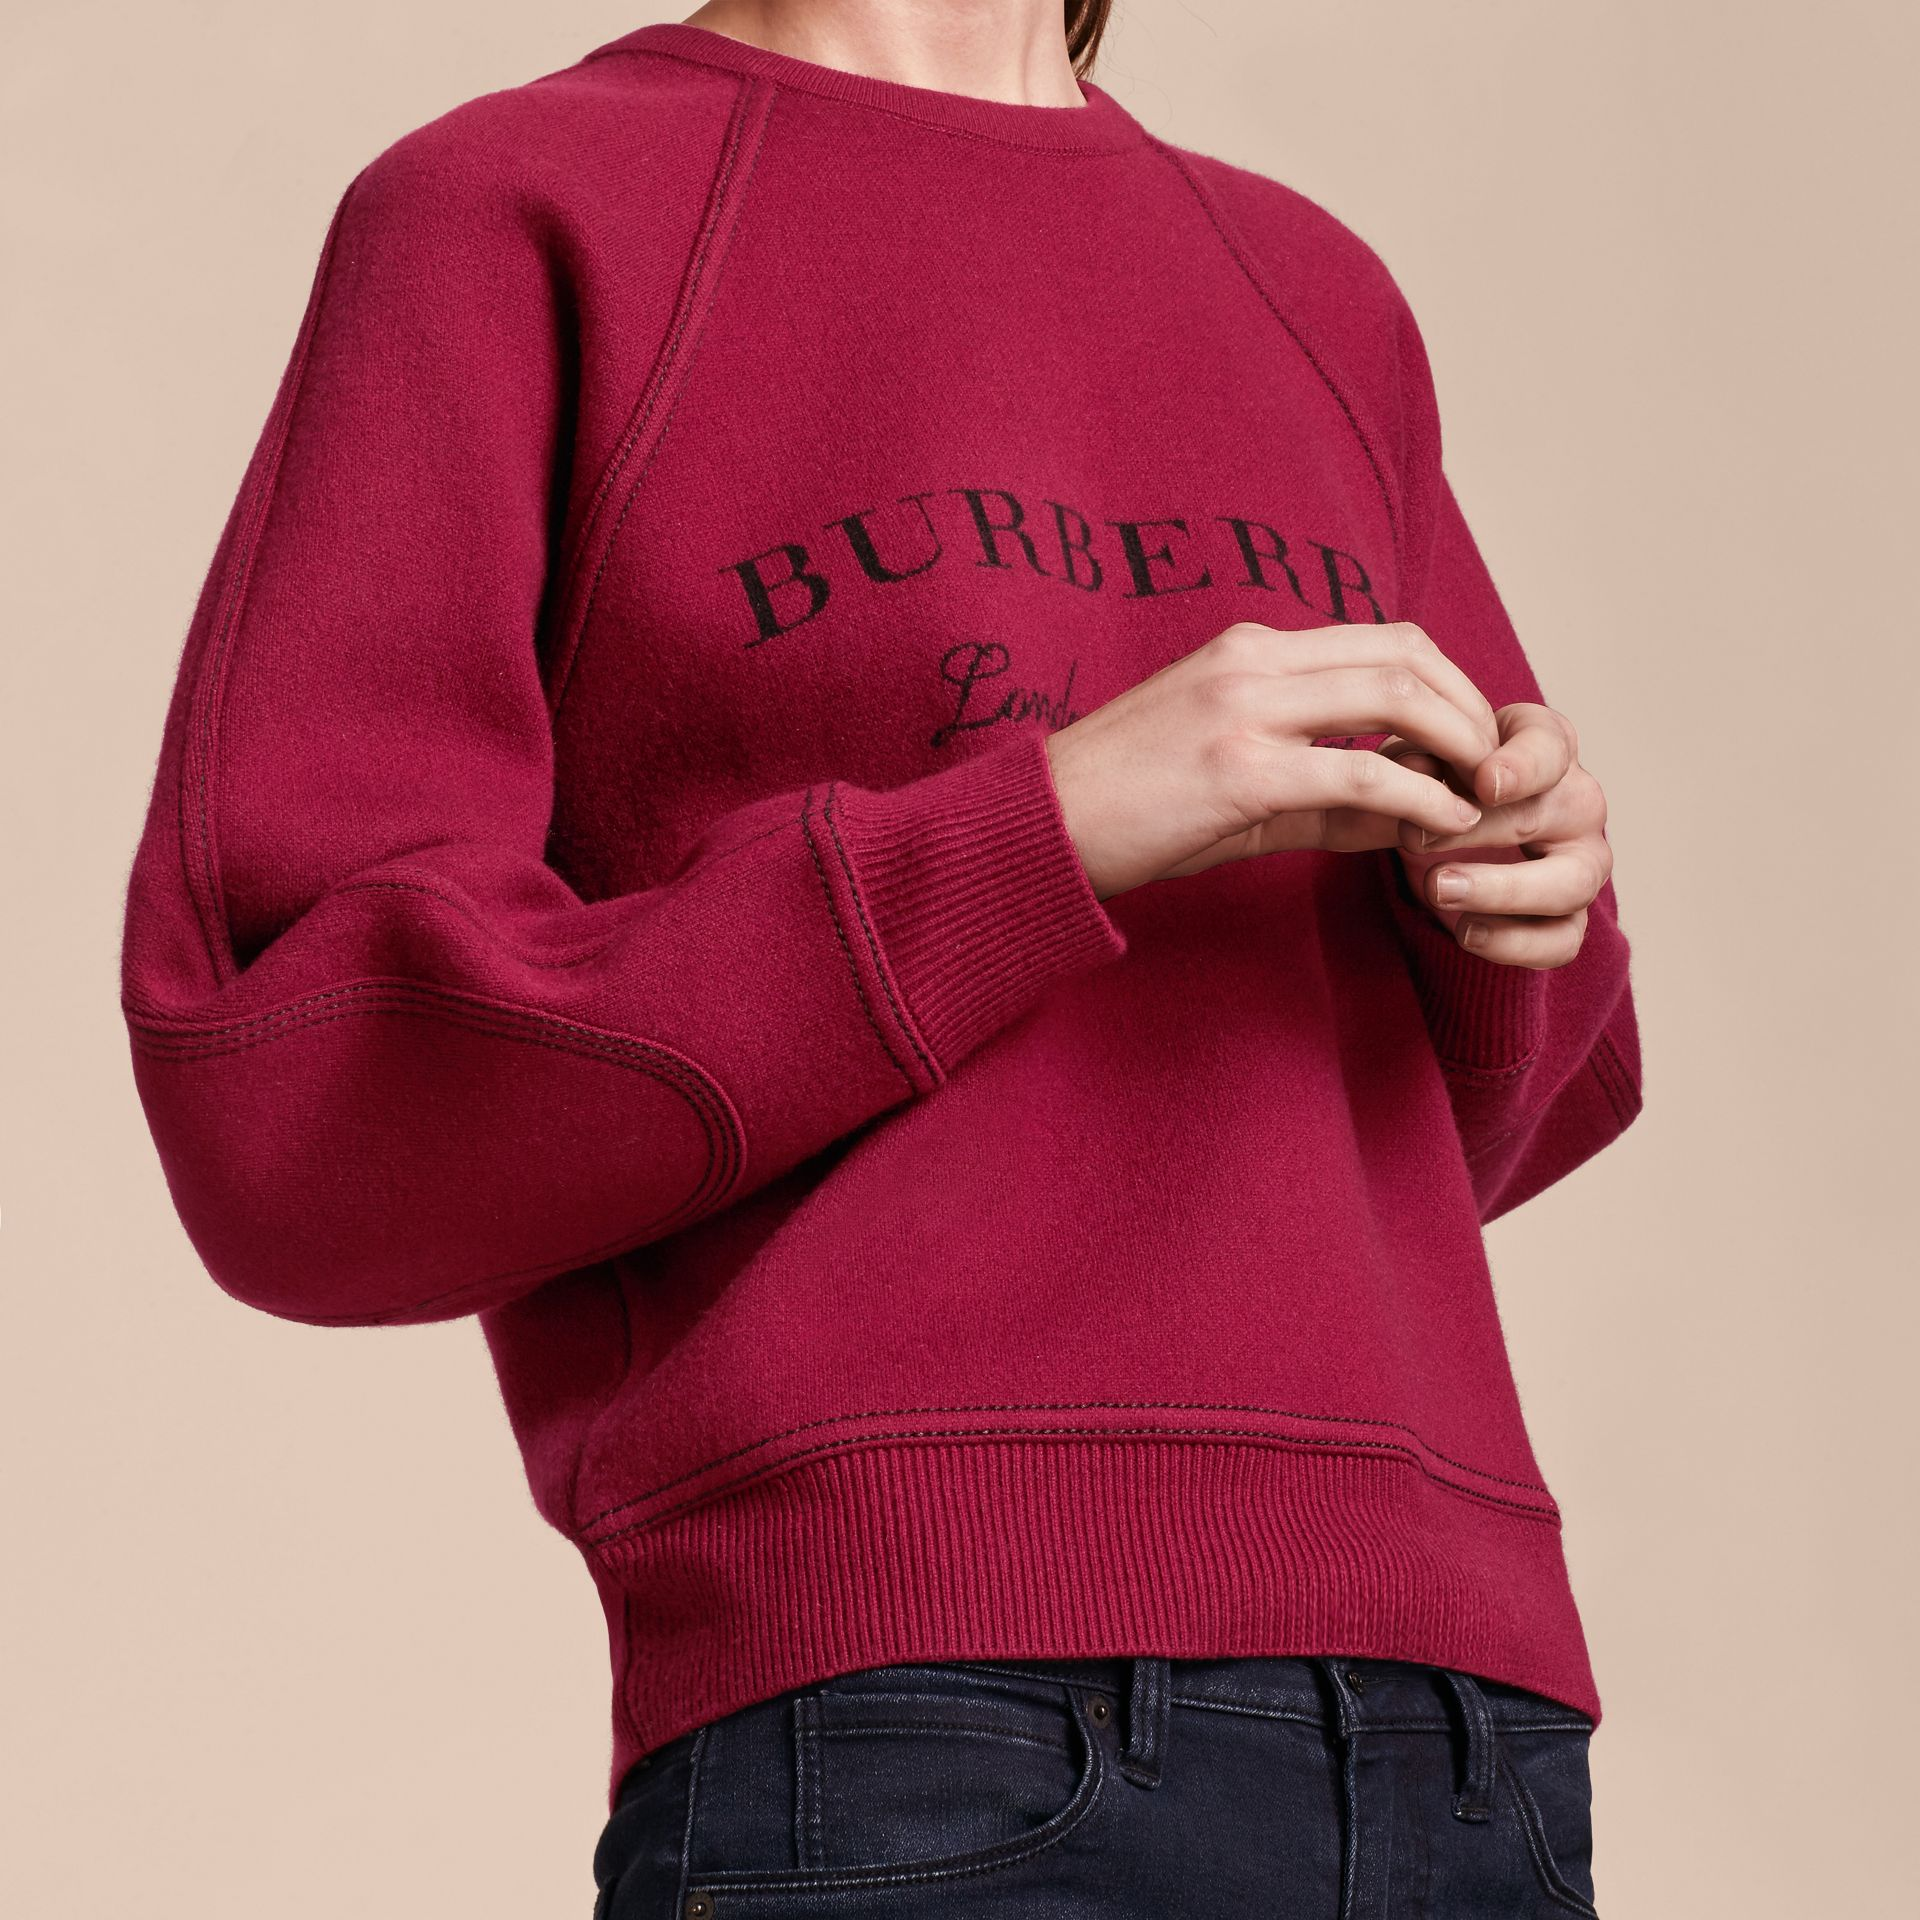 Topstitch Detail Wool Cashmere Blend Sweater in Burgundy - Women | Burberry Canada - gallery image 5